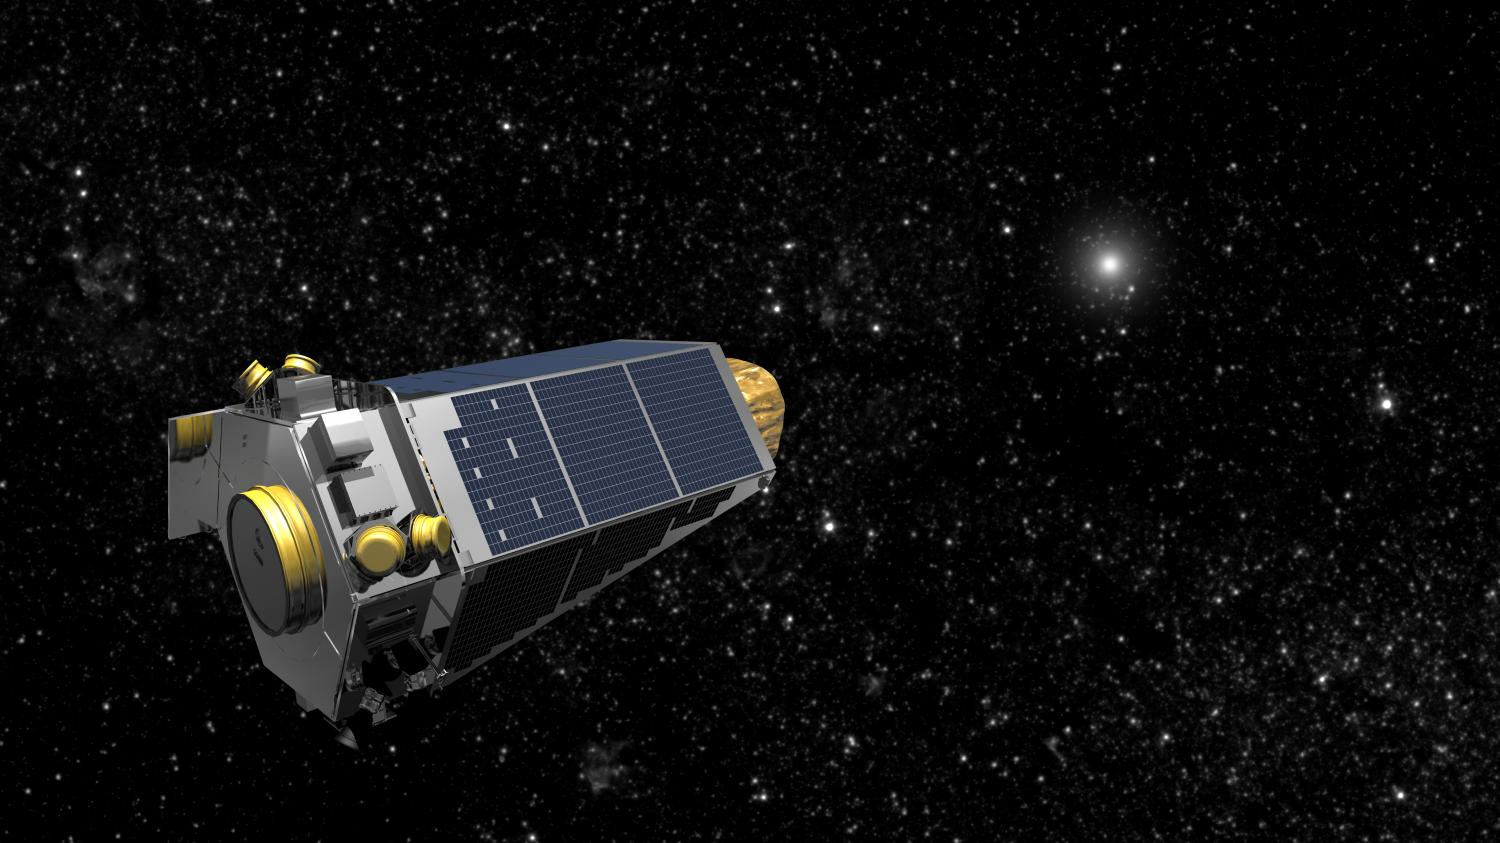 NASA's Kepler spacecraft nears the end as fuel runs low